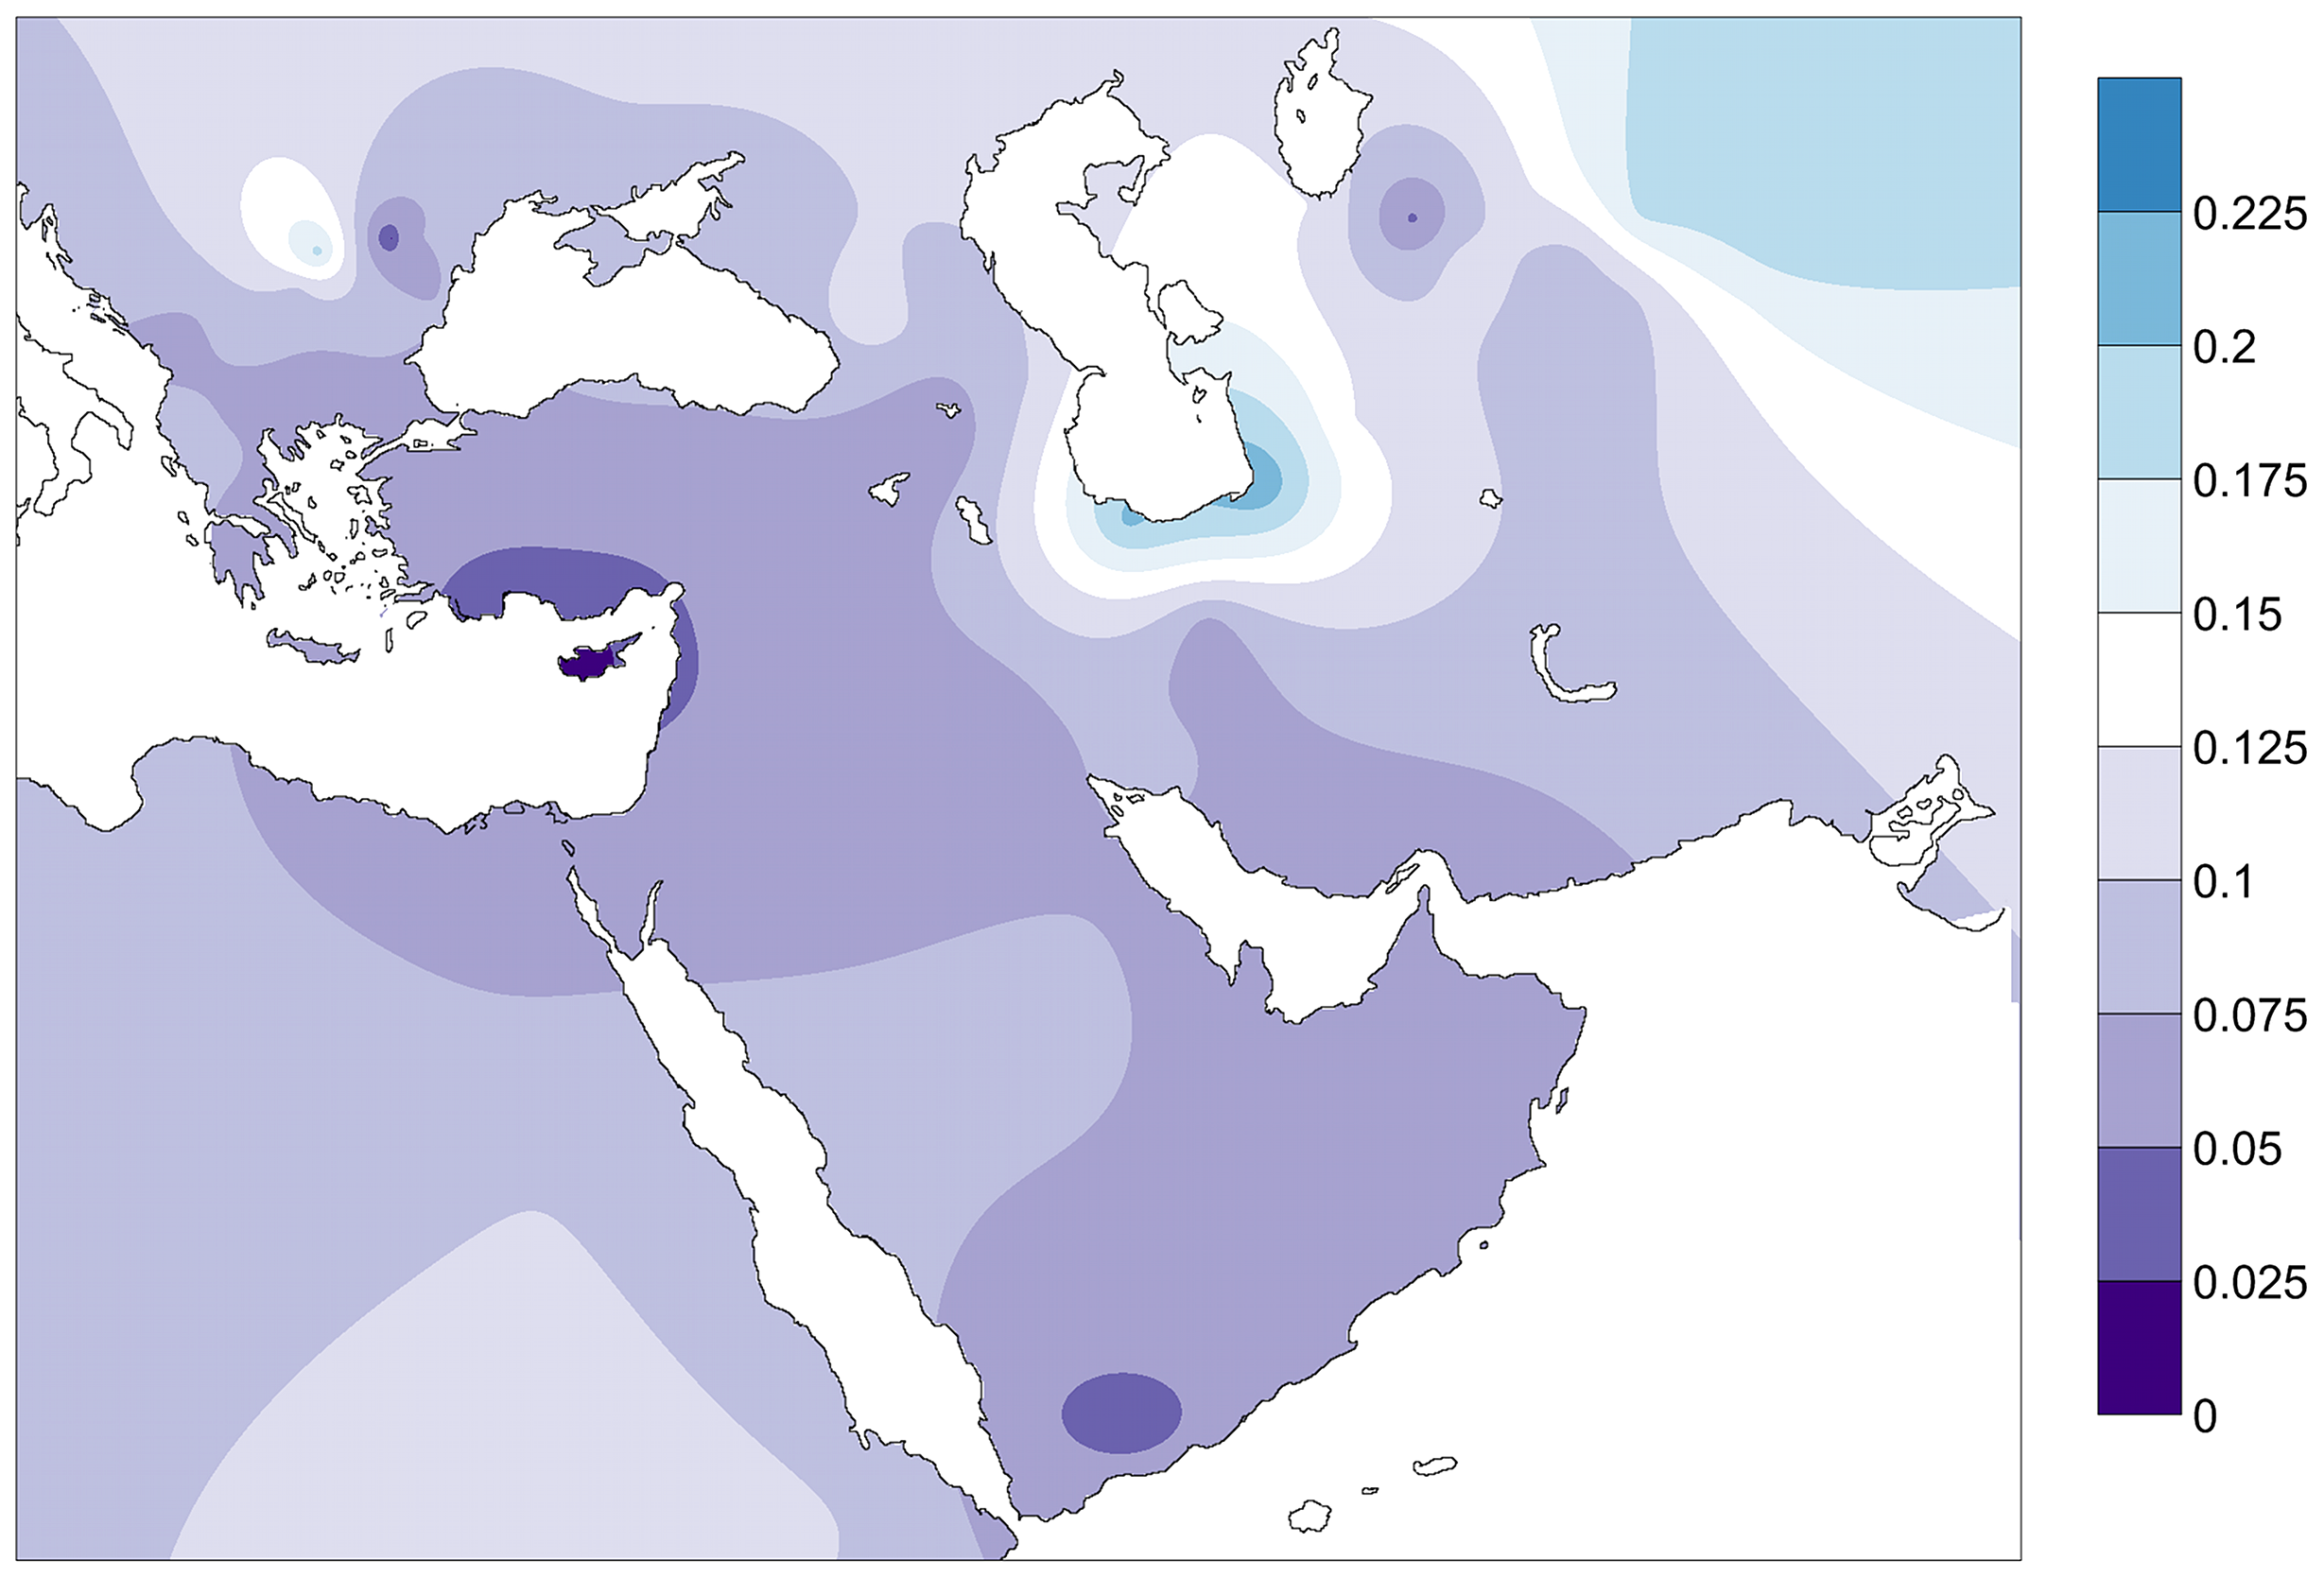 Contour map of Fst distances between the PPNB population and modern populations of the database.